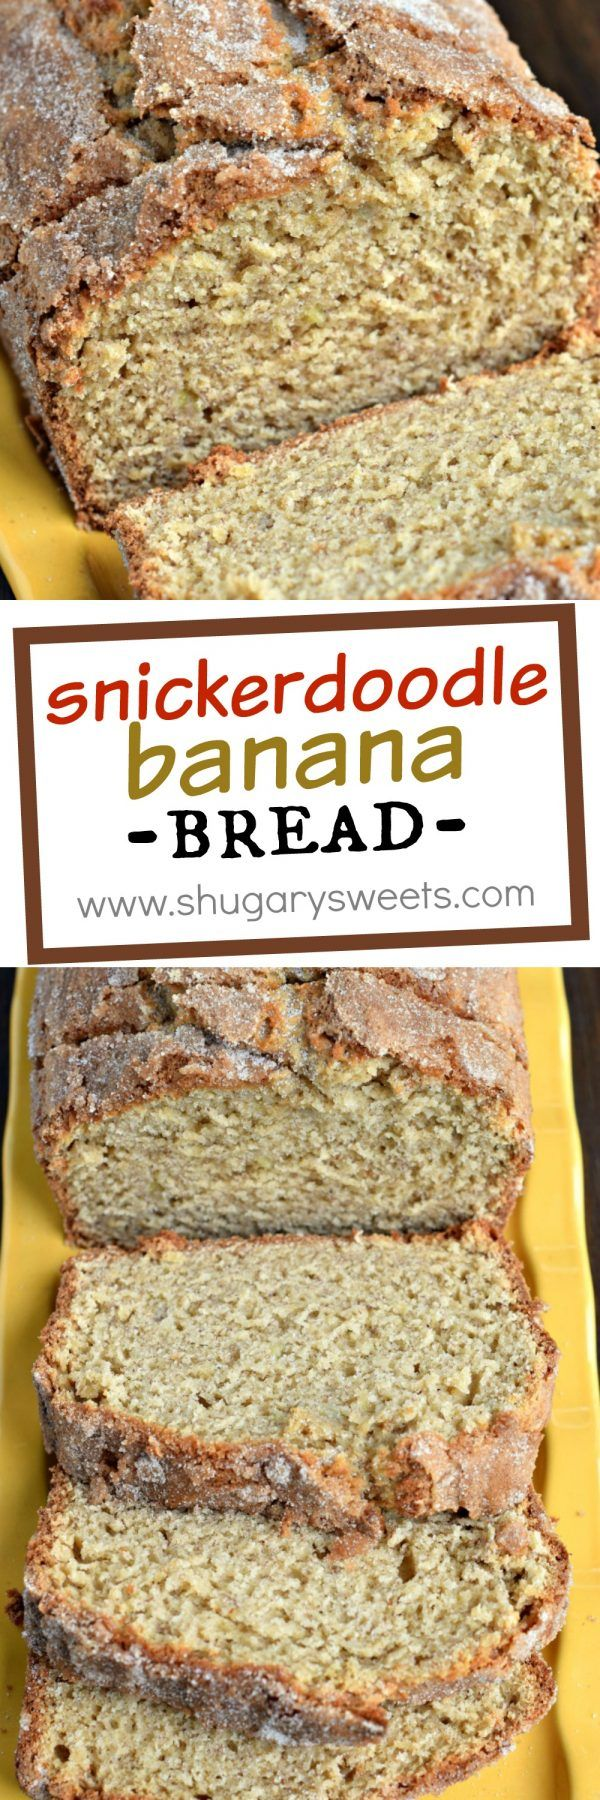 Banna Cake Recipe With Coconut Flour